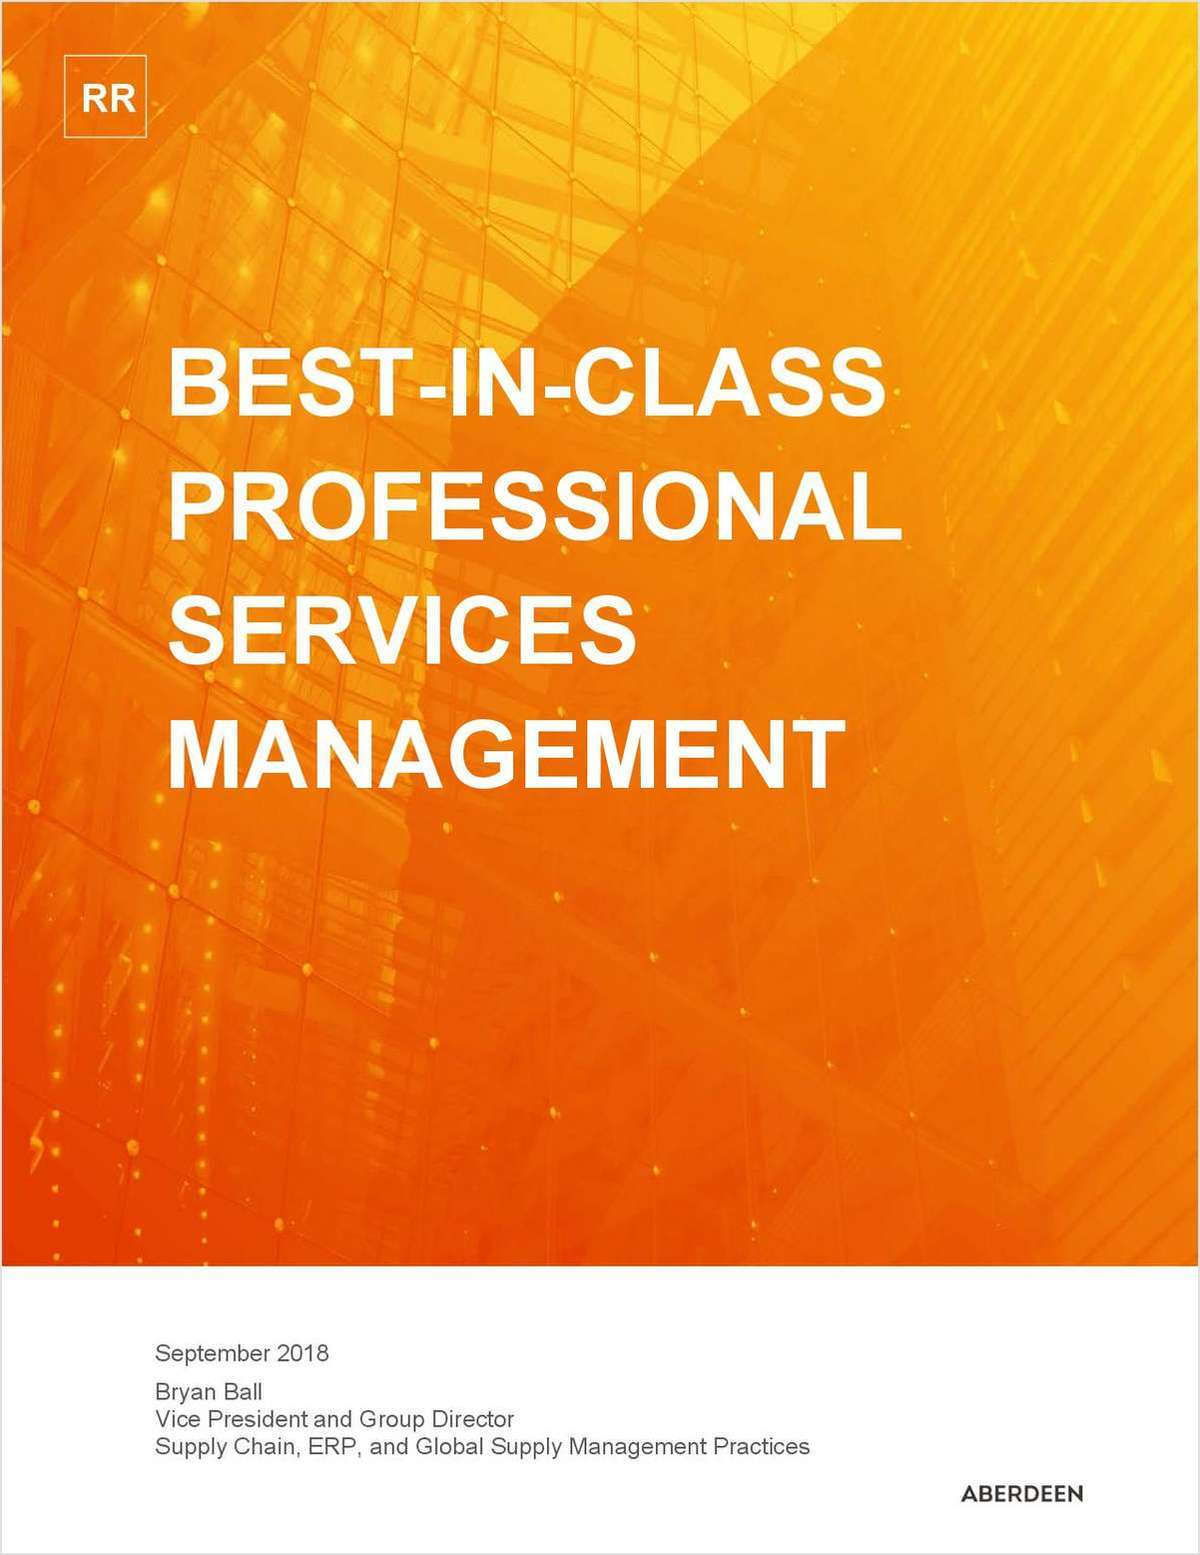 Aberdeen Research Report: Best-in-class Professional Services Management